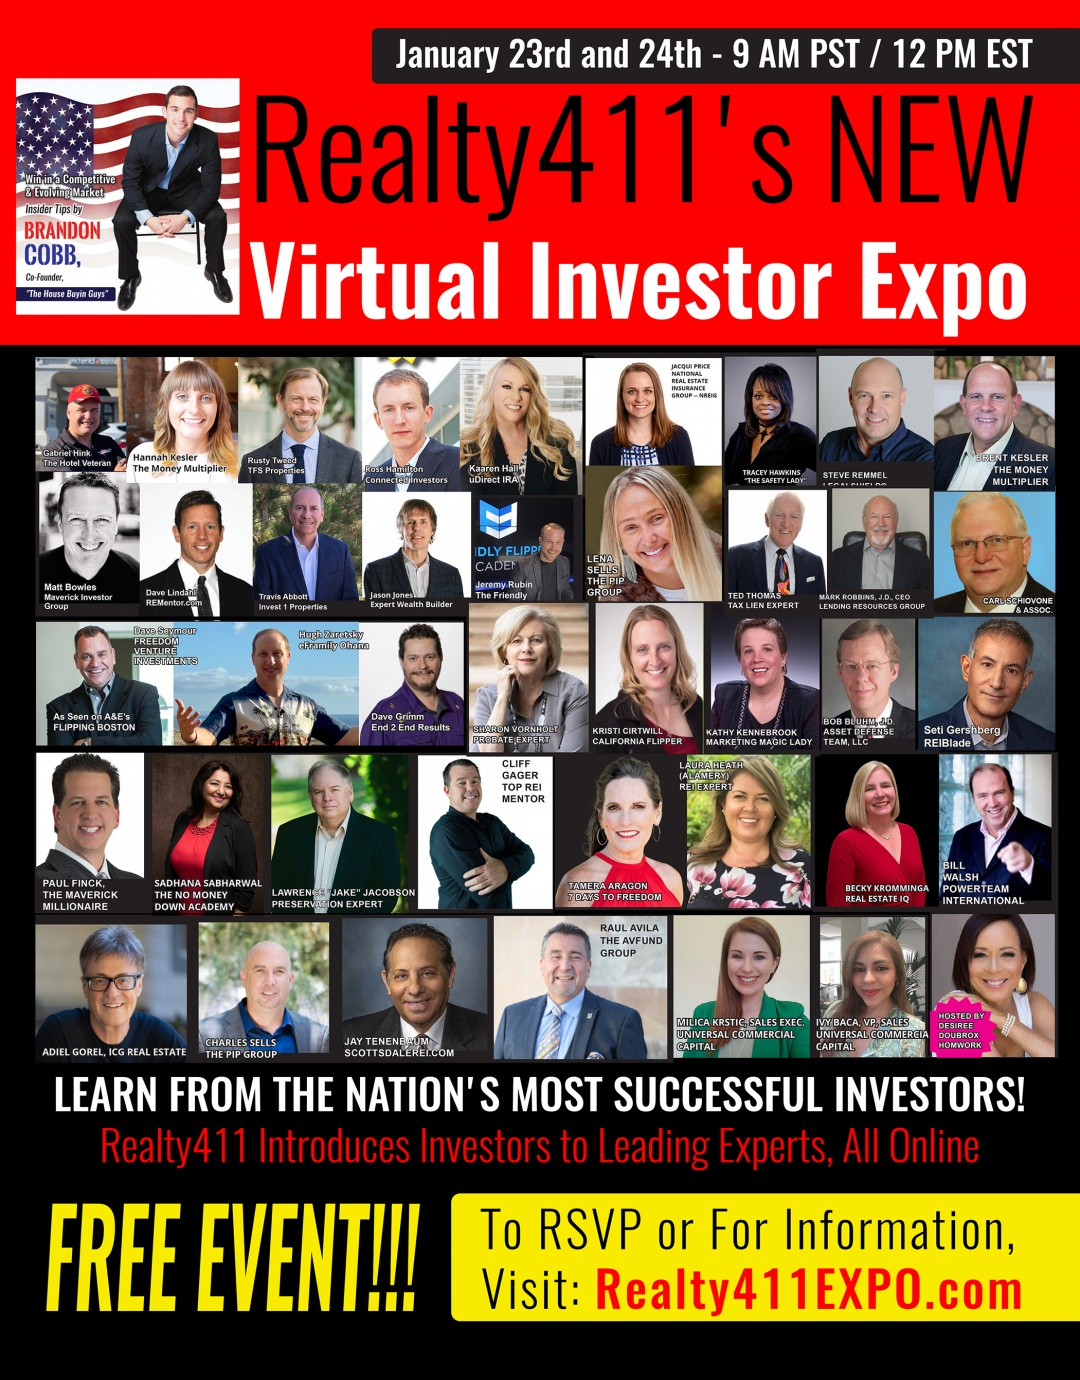 Realty411s-New-Virtual-Investor-Expo-3a-1080x1380